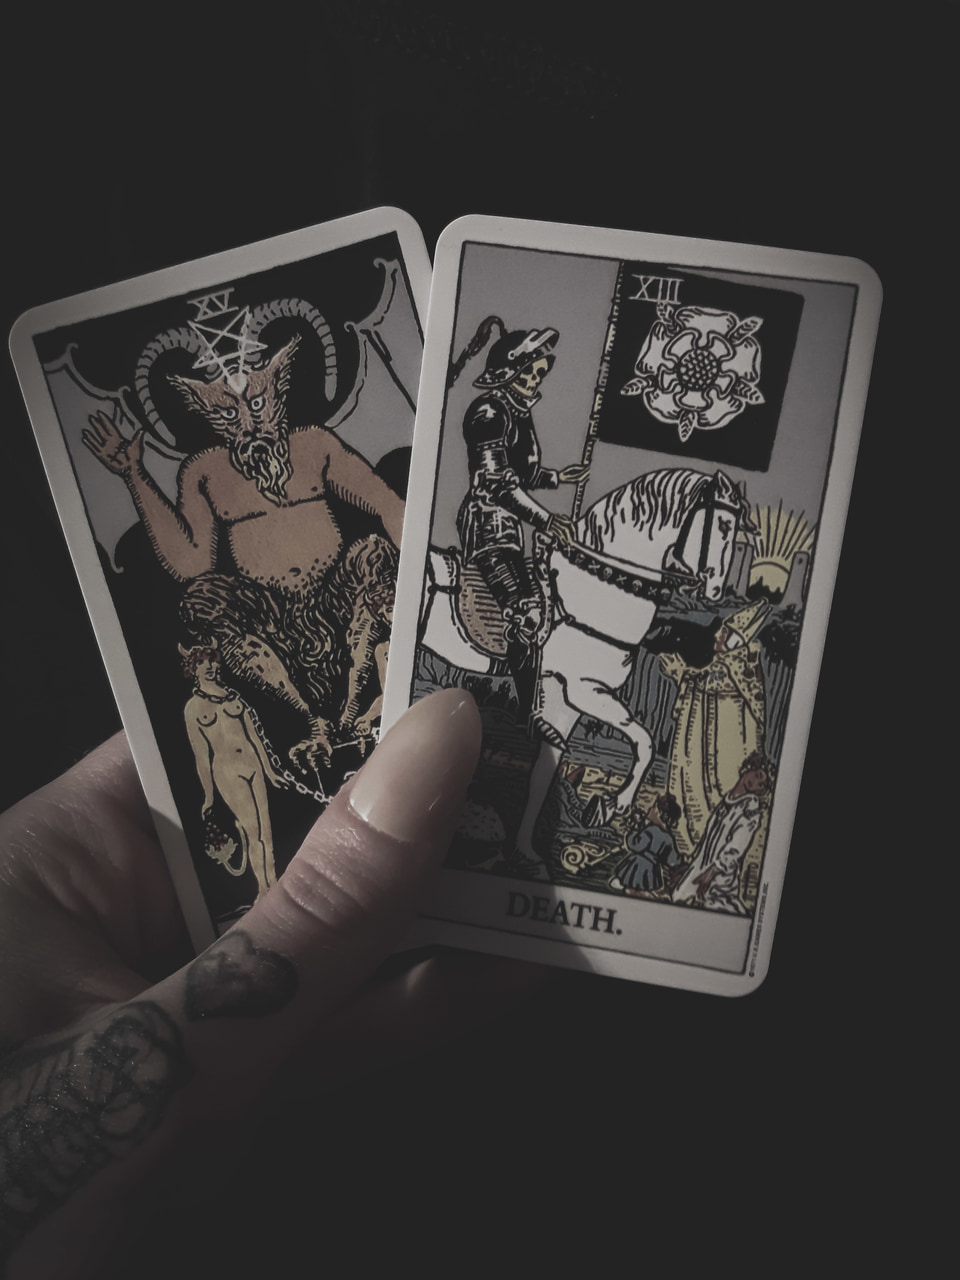 cards, dark, and death image